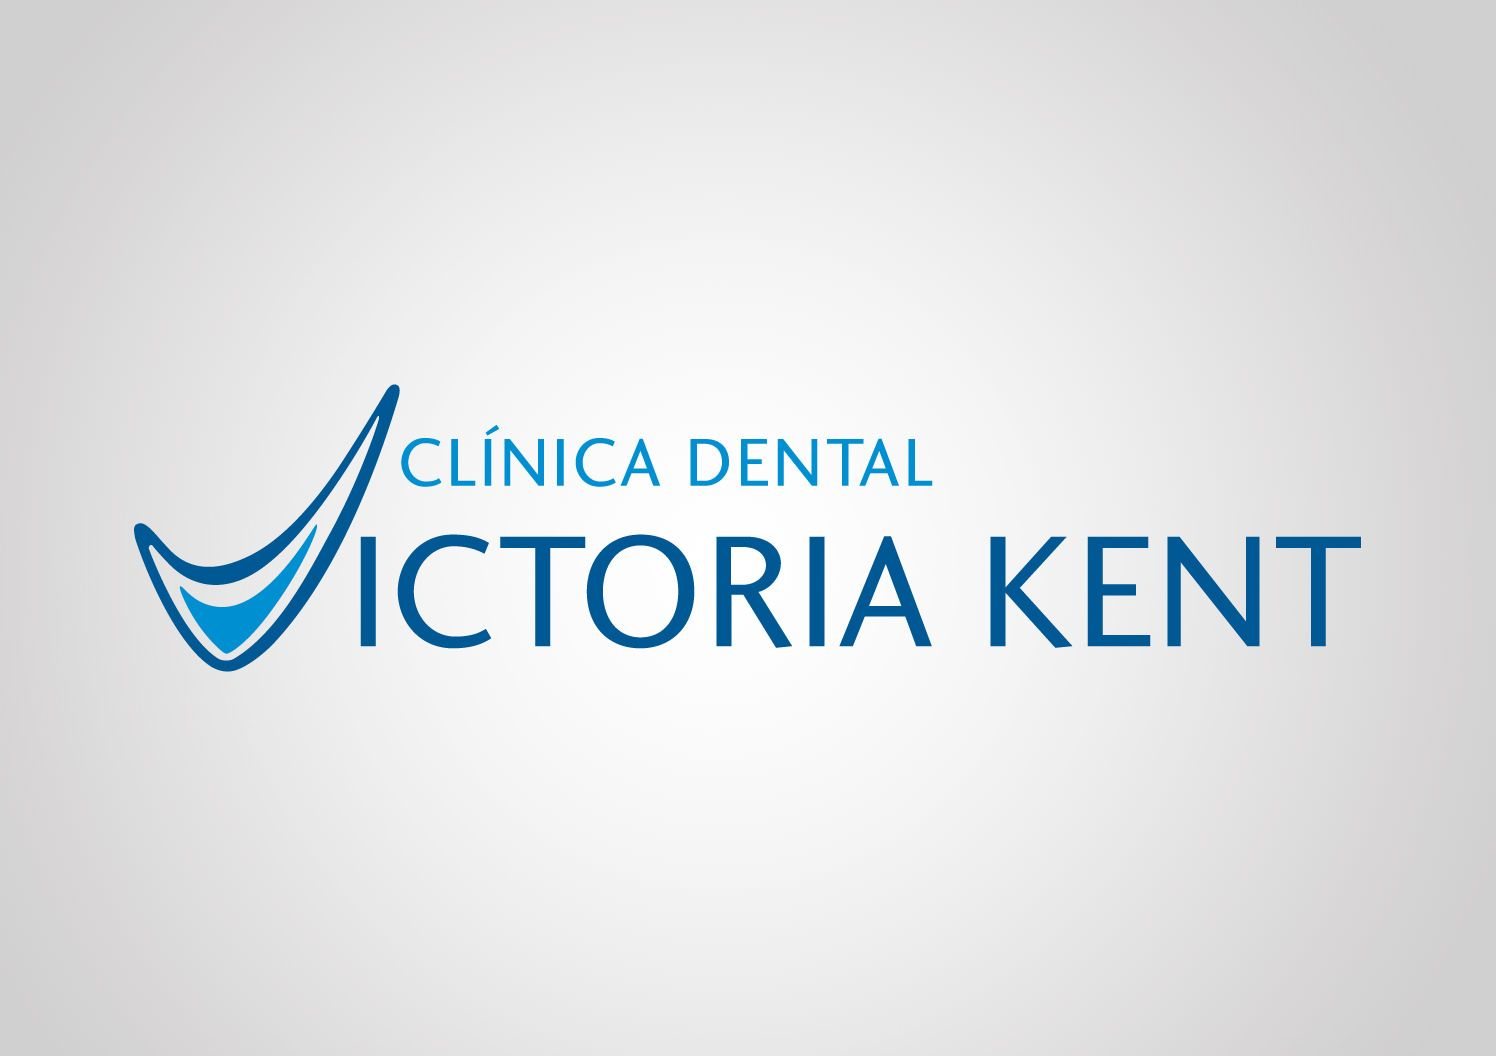 Logotipo actual de Clínica Dental Victoría Kent